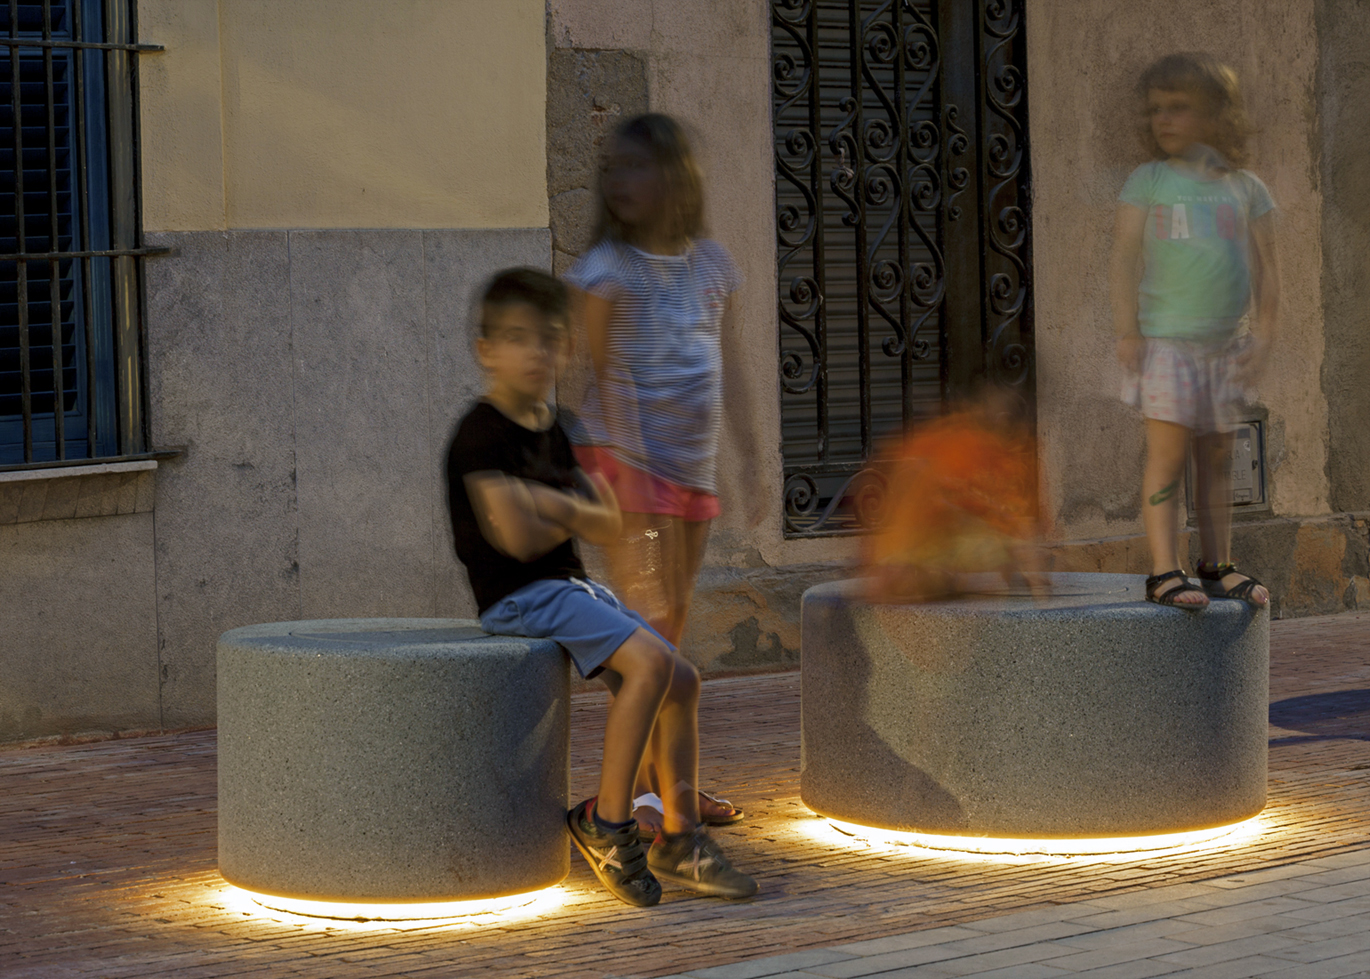 Illuminated Soc backless benches by SCOB Arquitectes at El Masnou, Barcelona